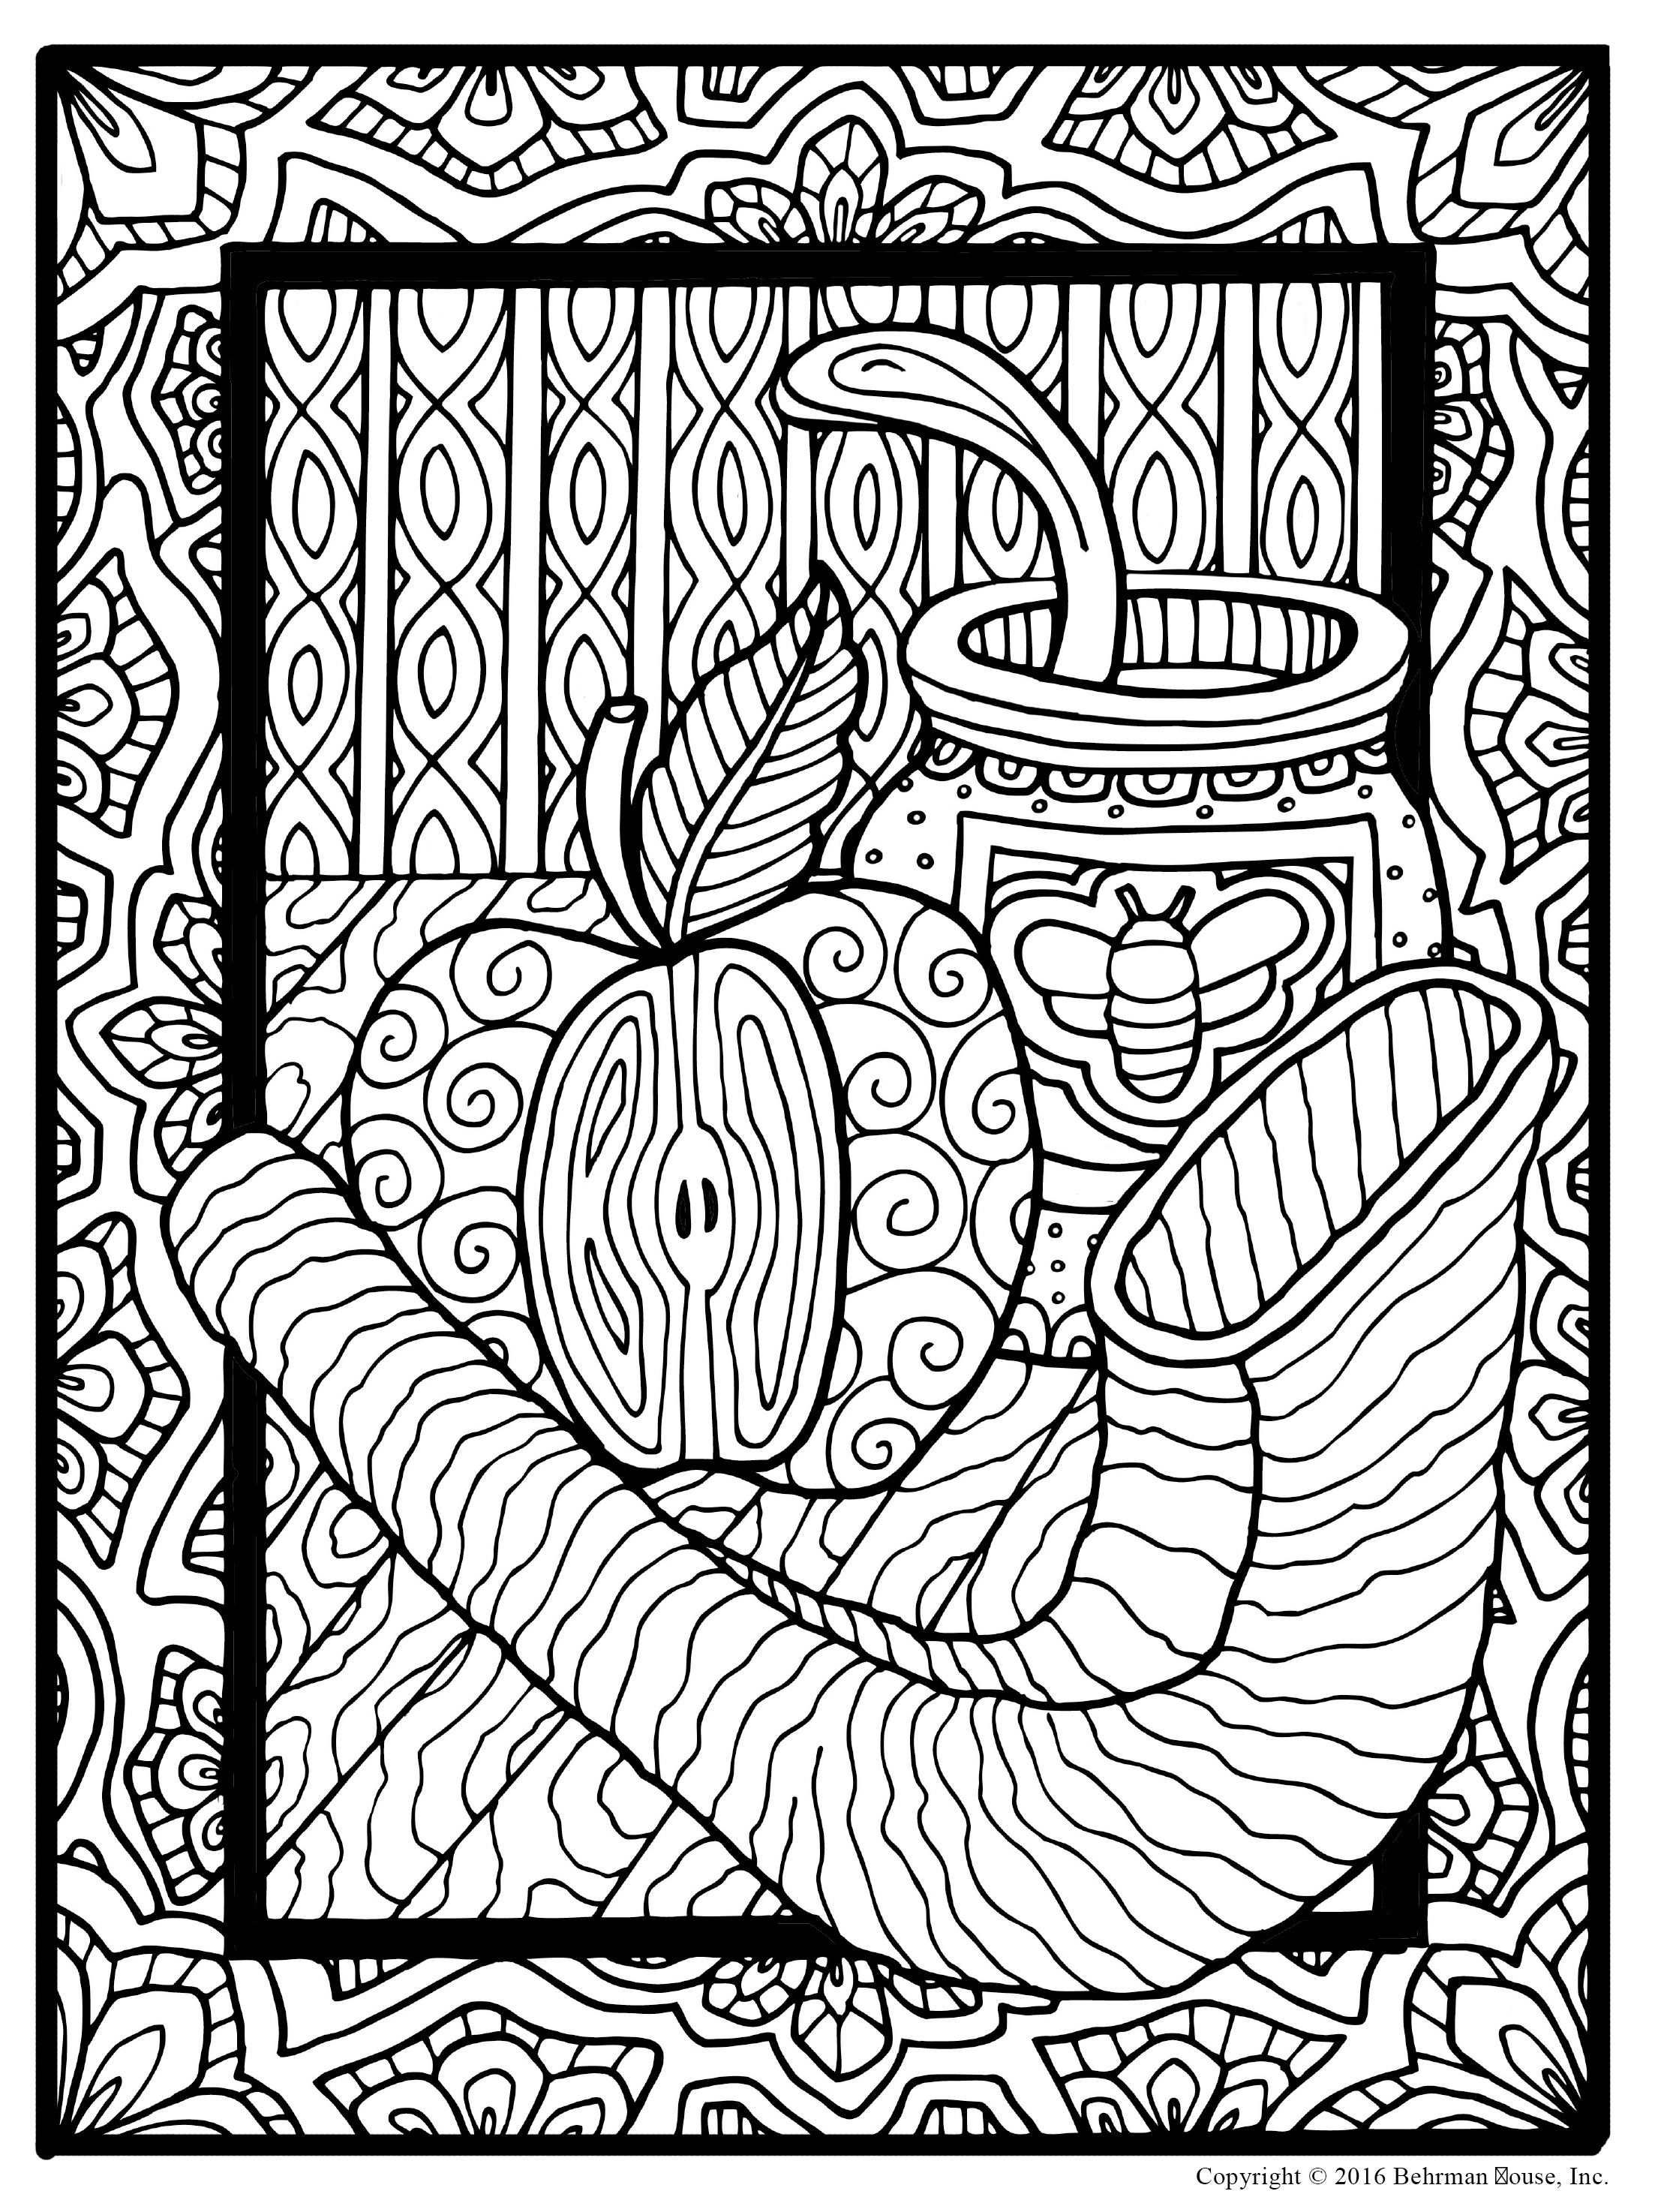 Pin On Crafts Coloring Pages Zendoodles